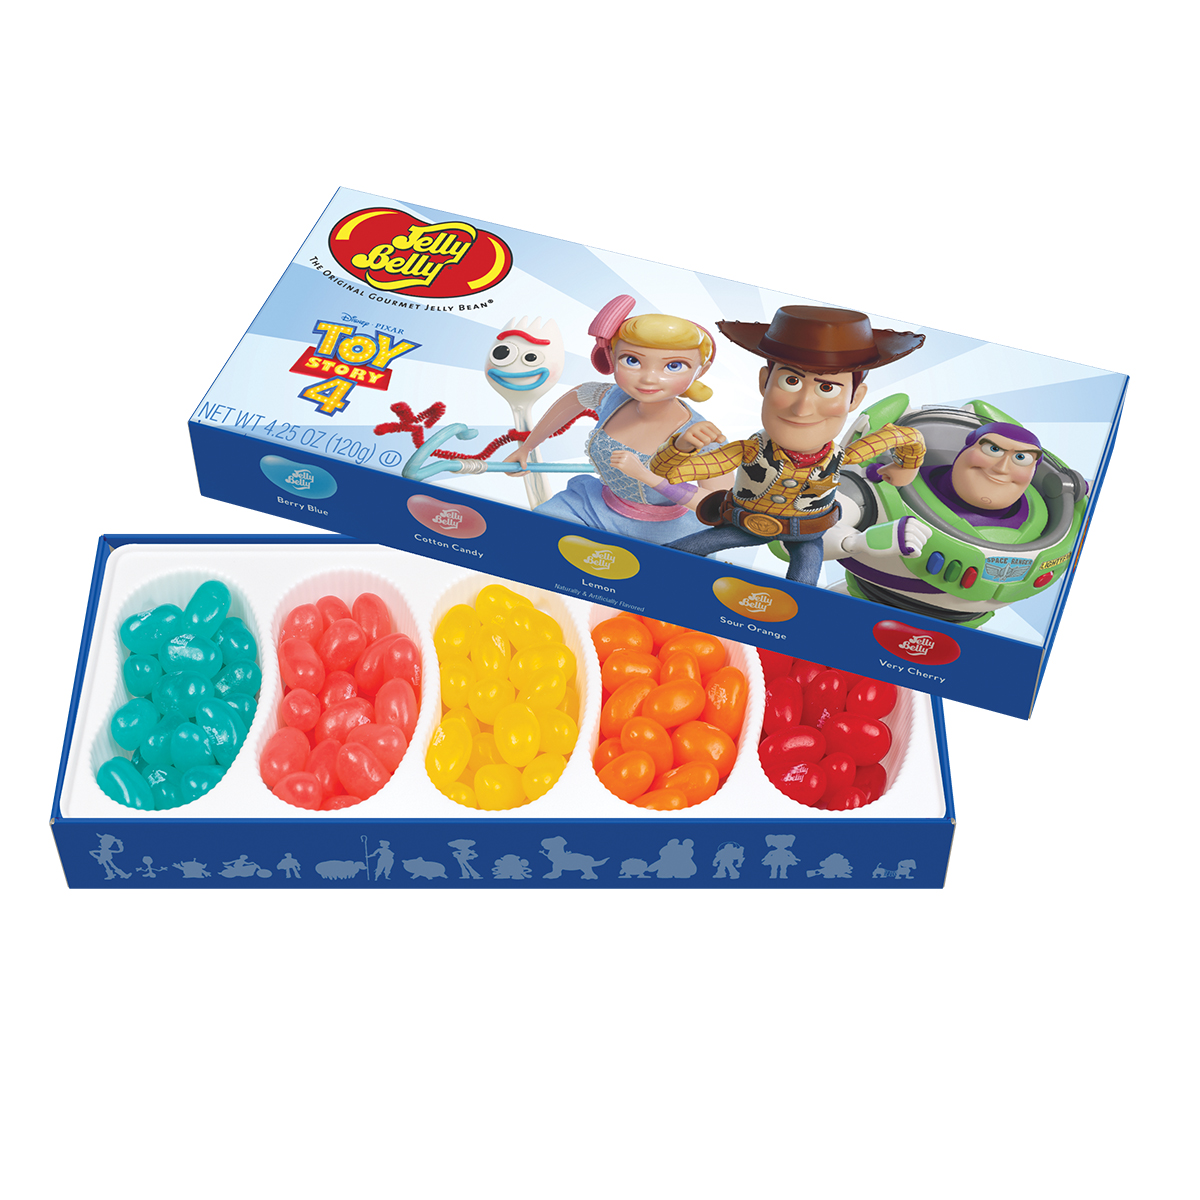 Disney©/PIXAR Toy Story 4 Jelly Beans 4.25 oz Gift Box